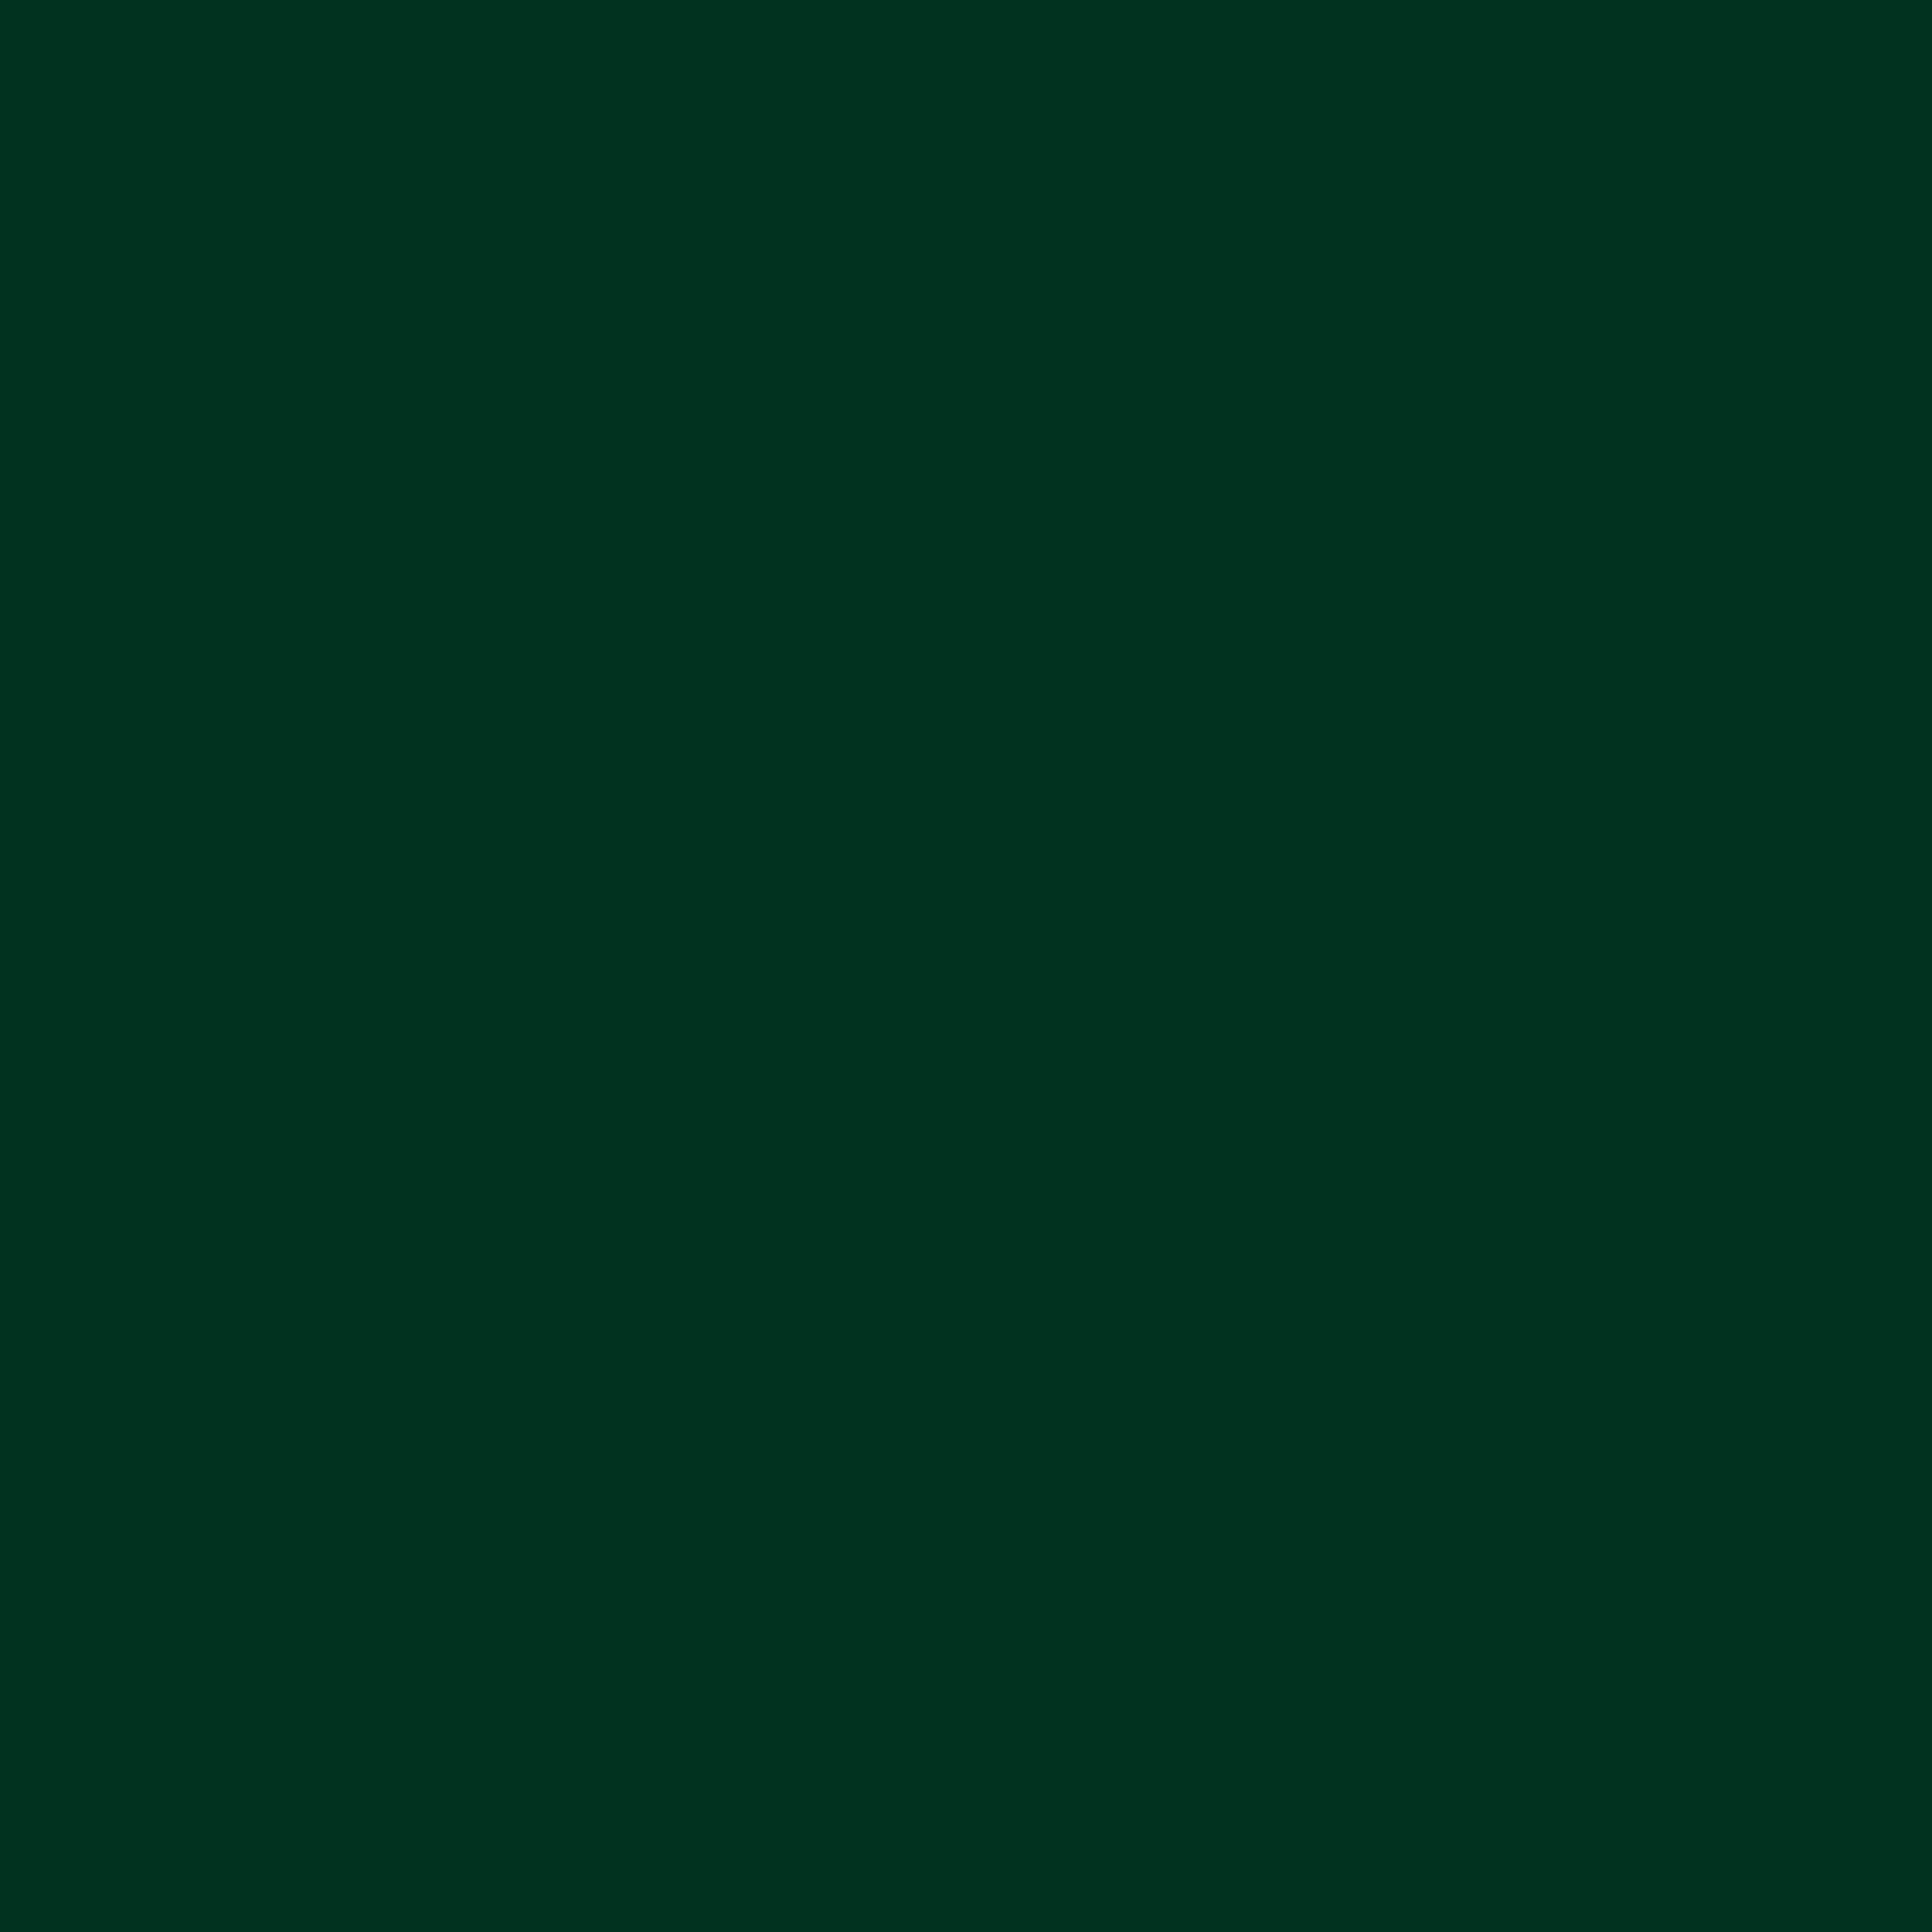 2732x2732 Dark Green Solid Color Background